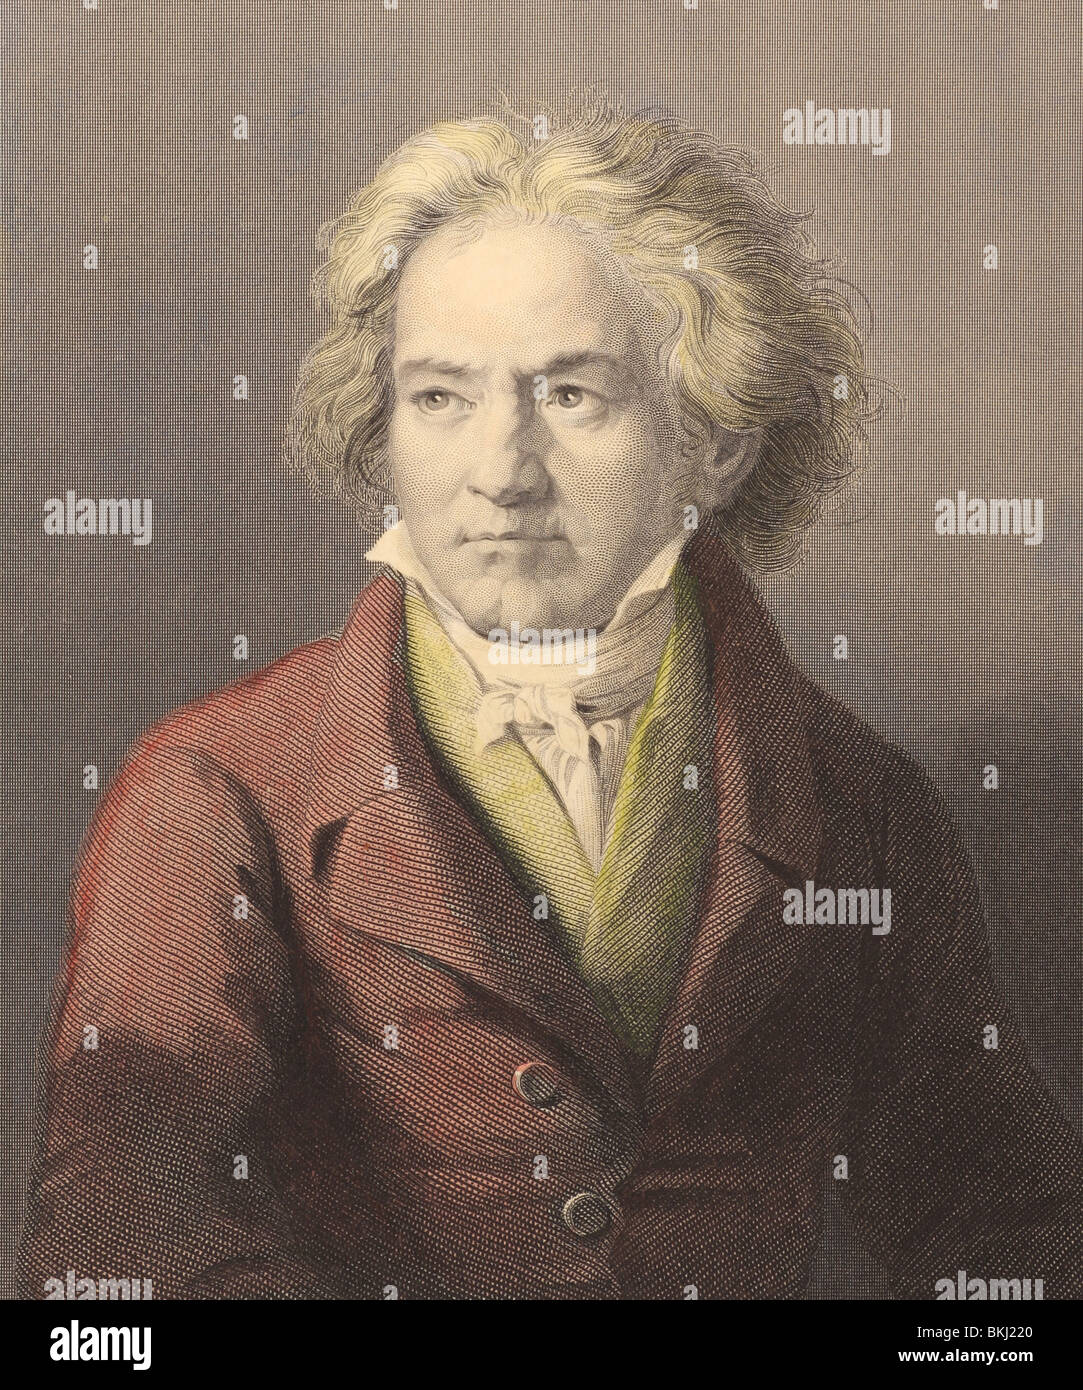 Ludwig van Beethoven (1770-1827) on engraving from the 1800s. German composer and pianist. - Stock Image